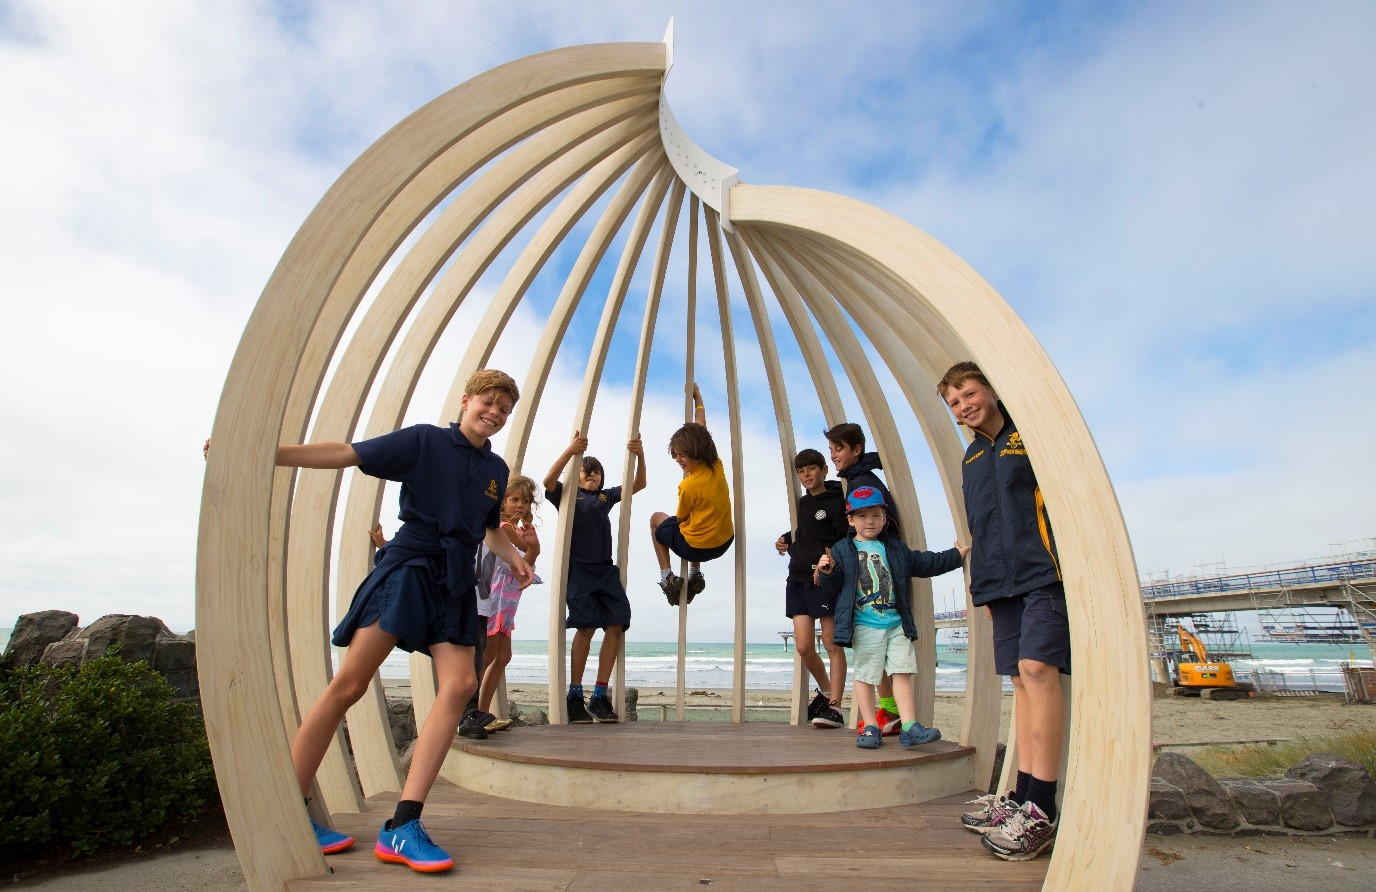 Children pose inside a shell shaped wooden structure